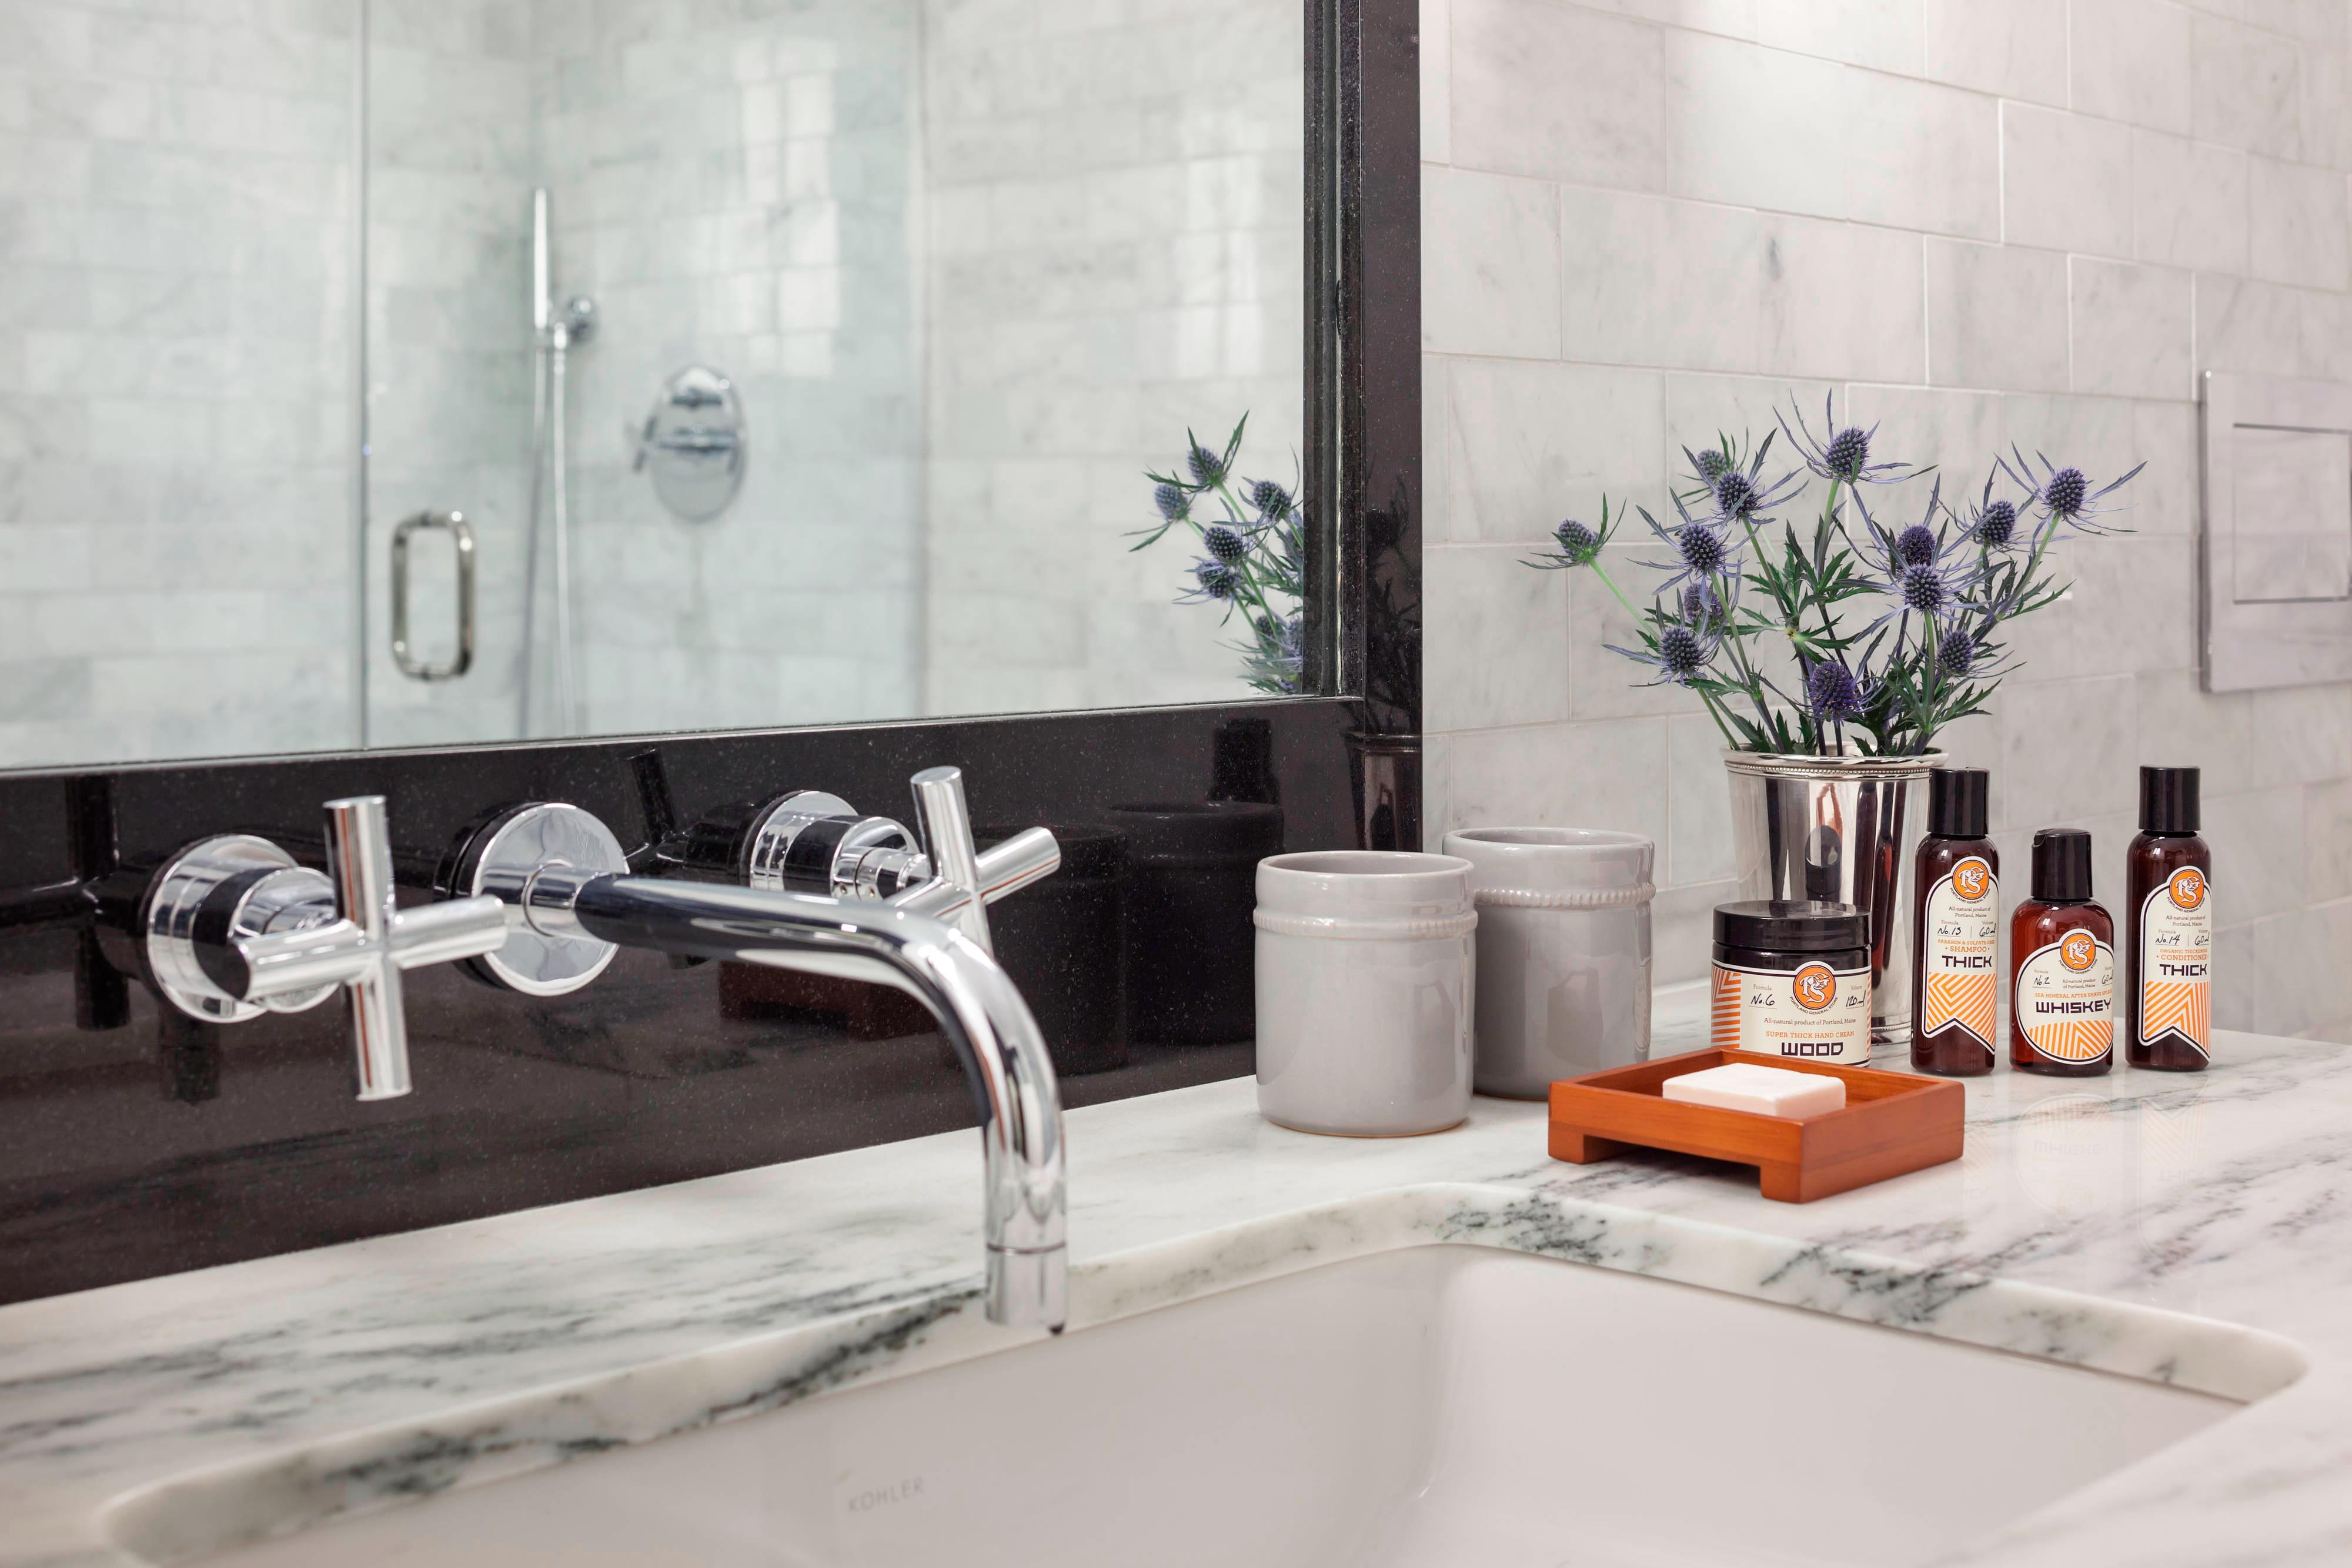 Press Hotel Luxurious bathroom amenities